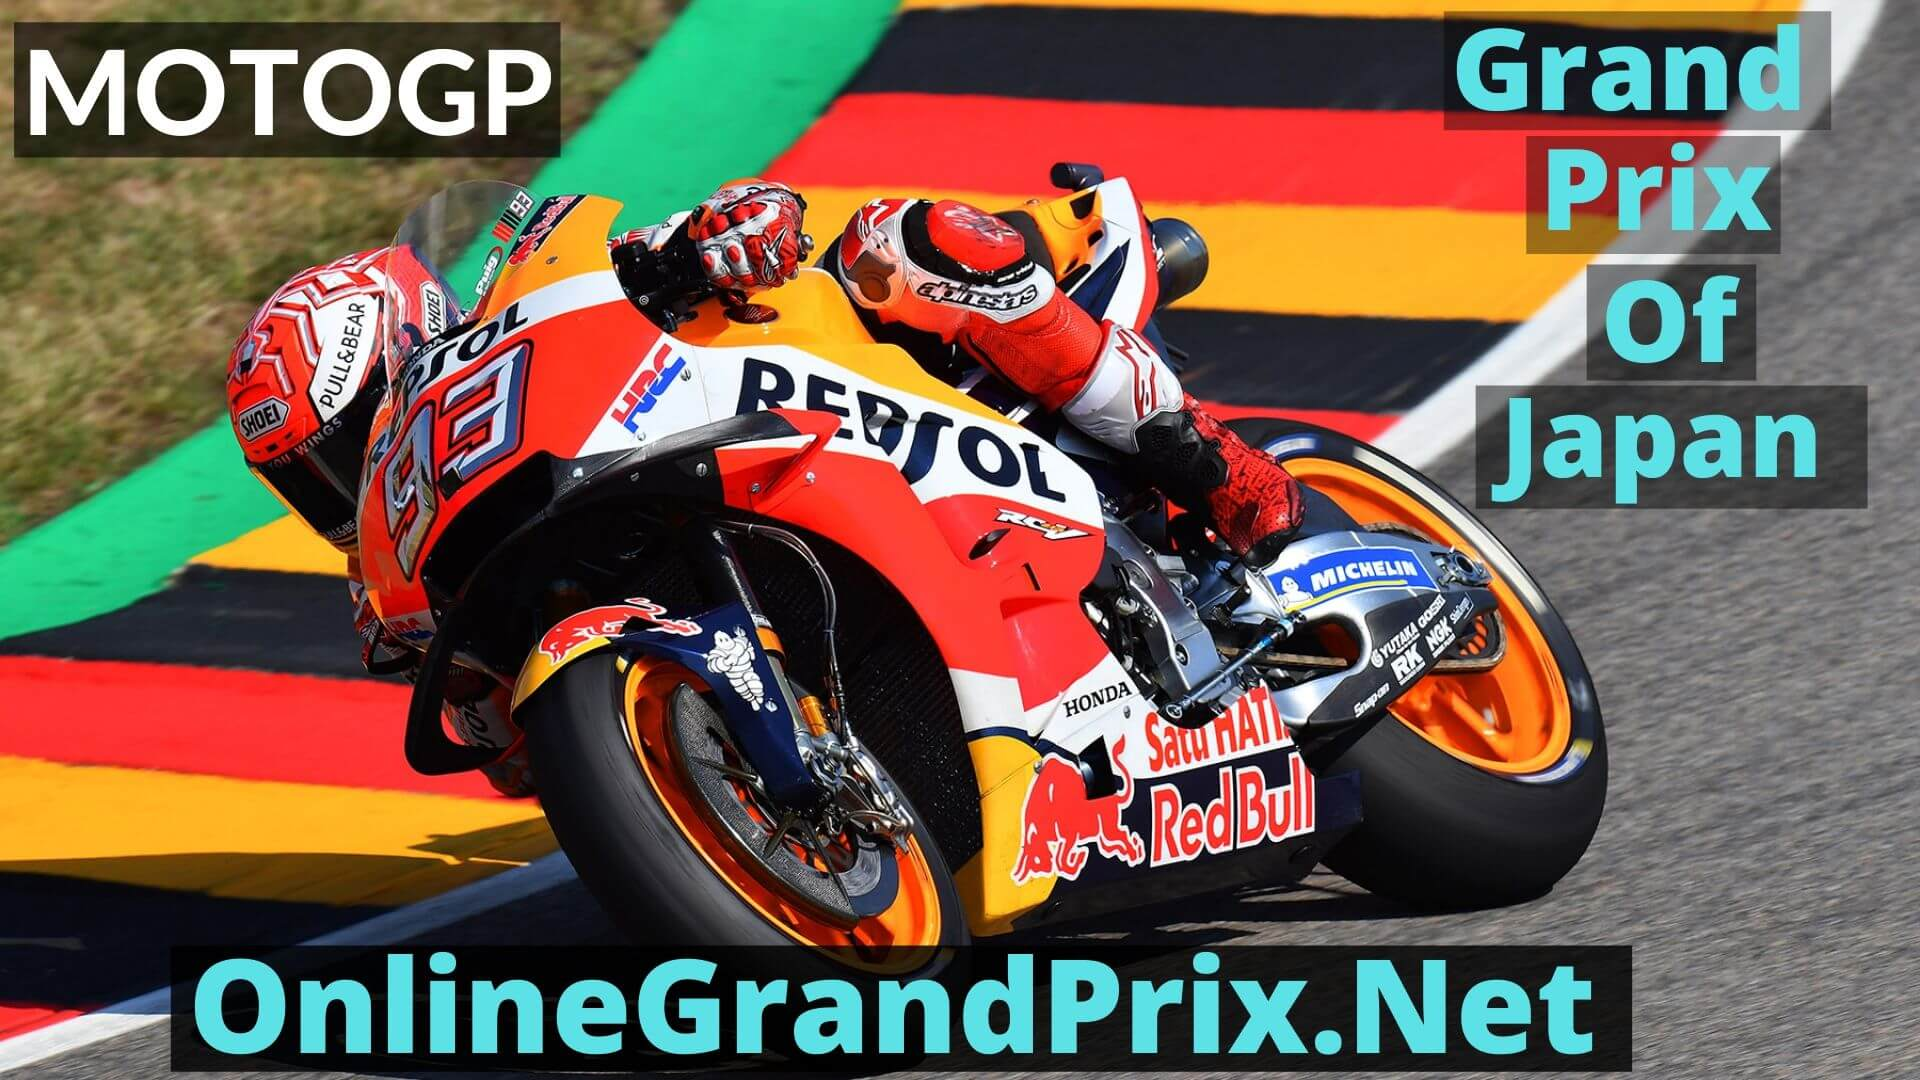 Grand Prix of Japan Live Stream 2020 | MotoGP